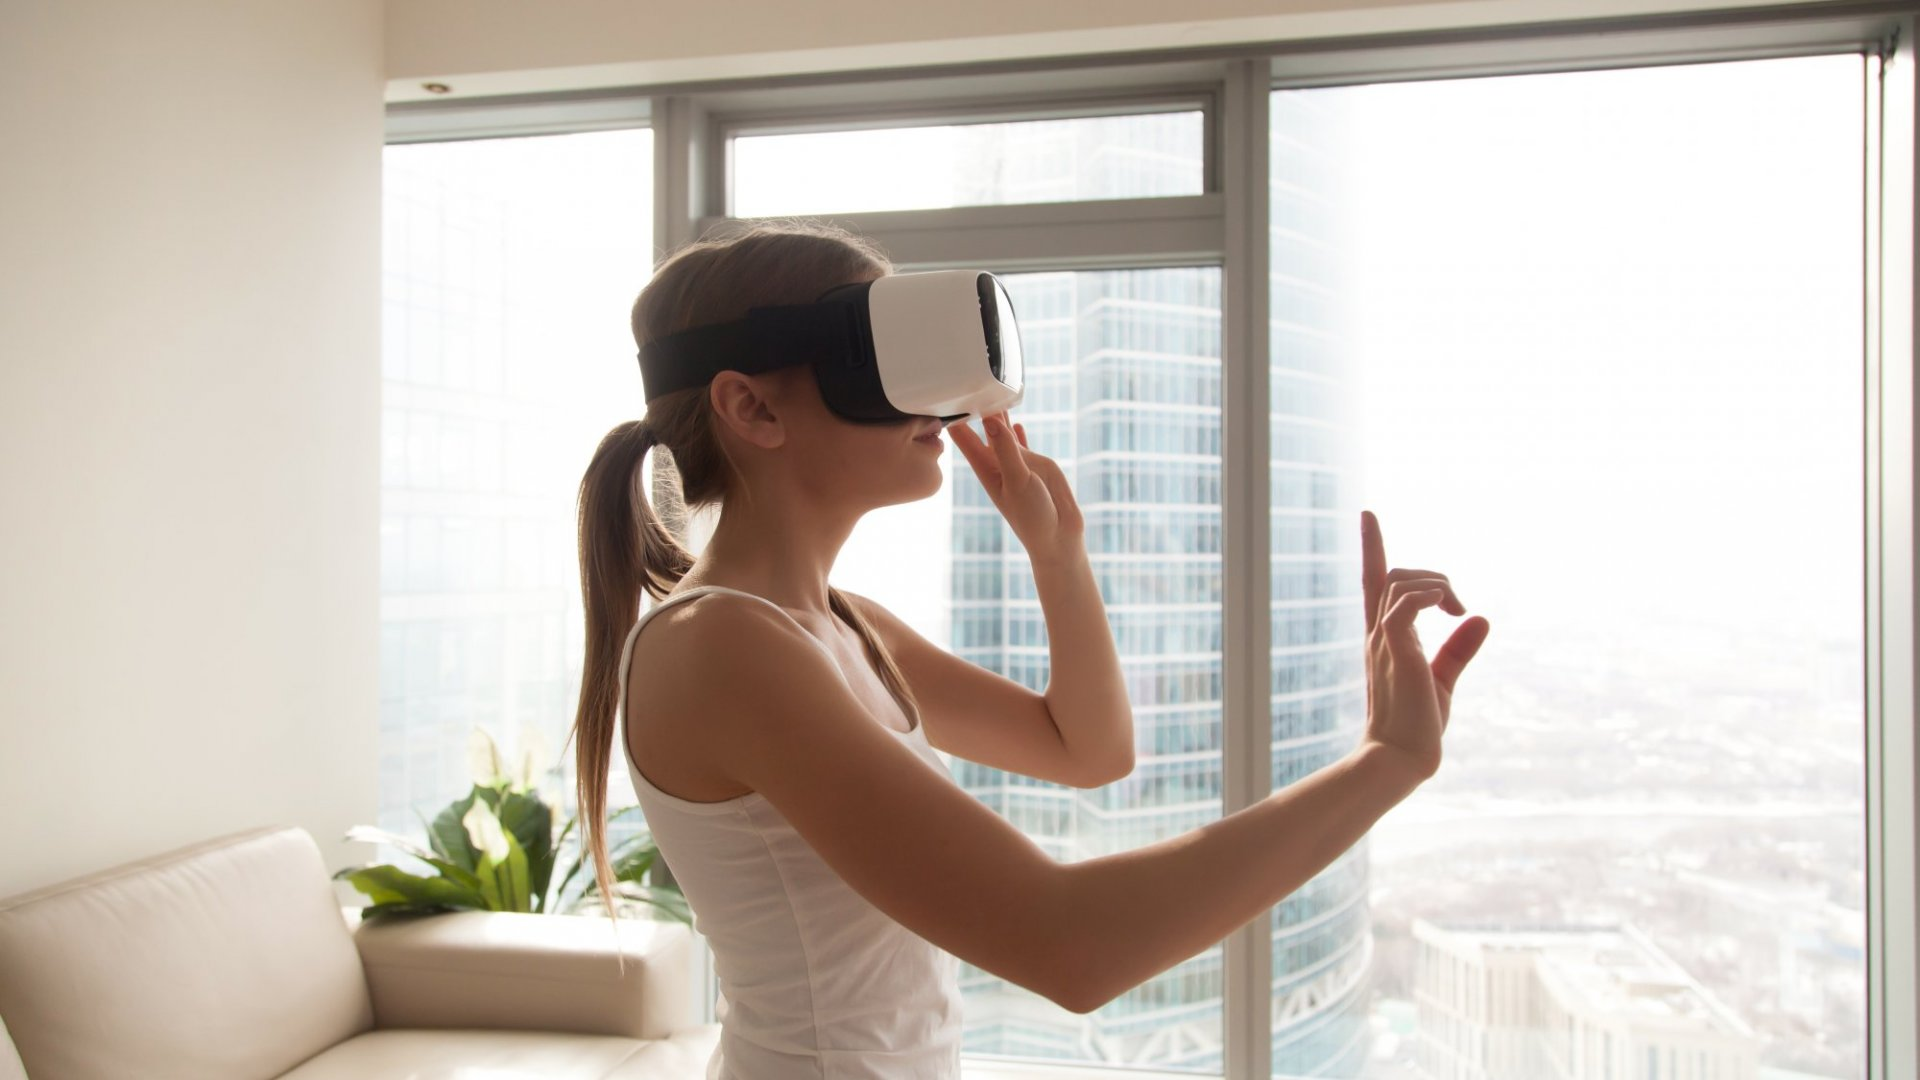 Why AR and Mobile Payments Are a Perfect Match